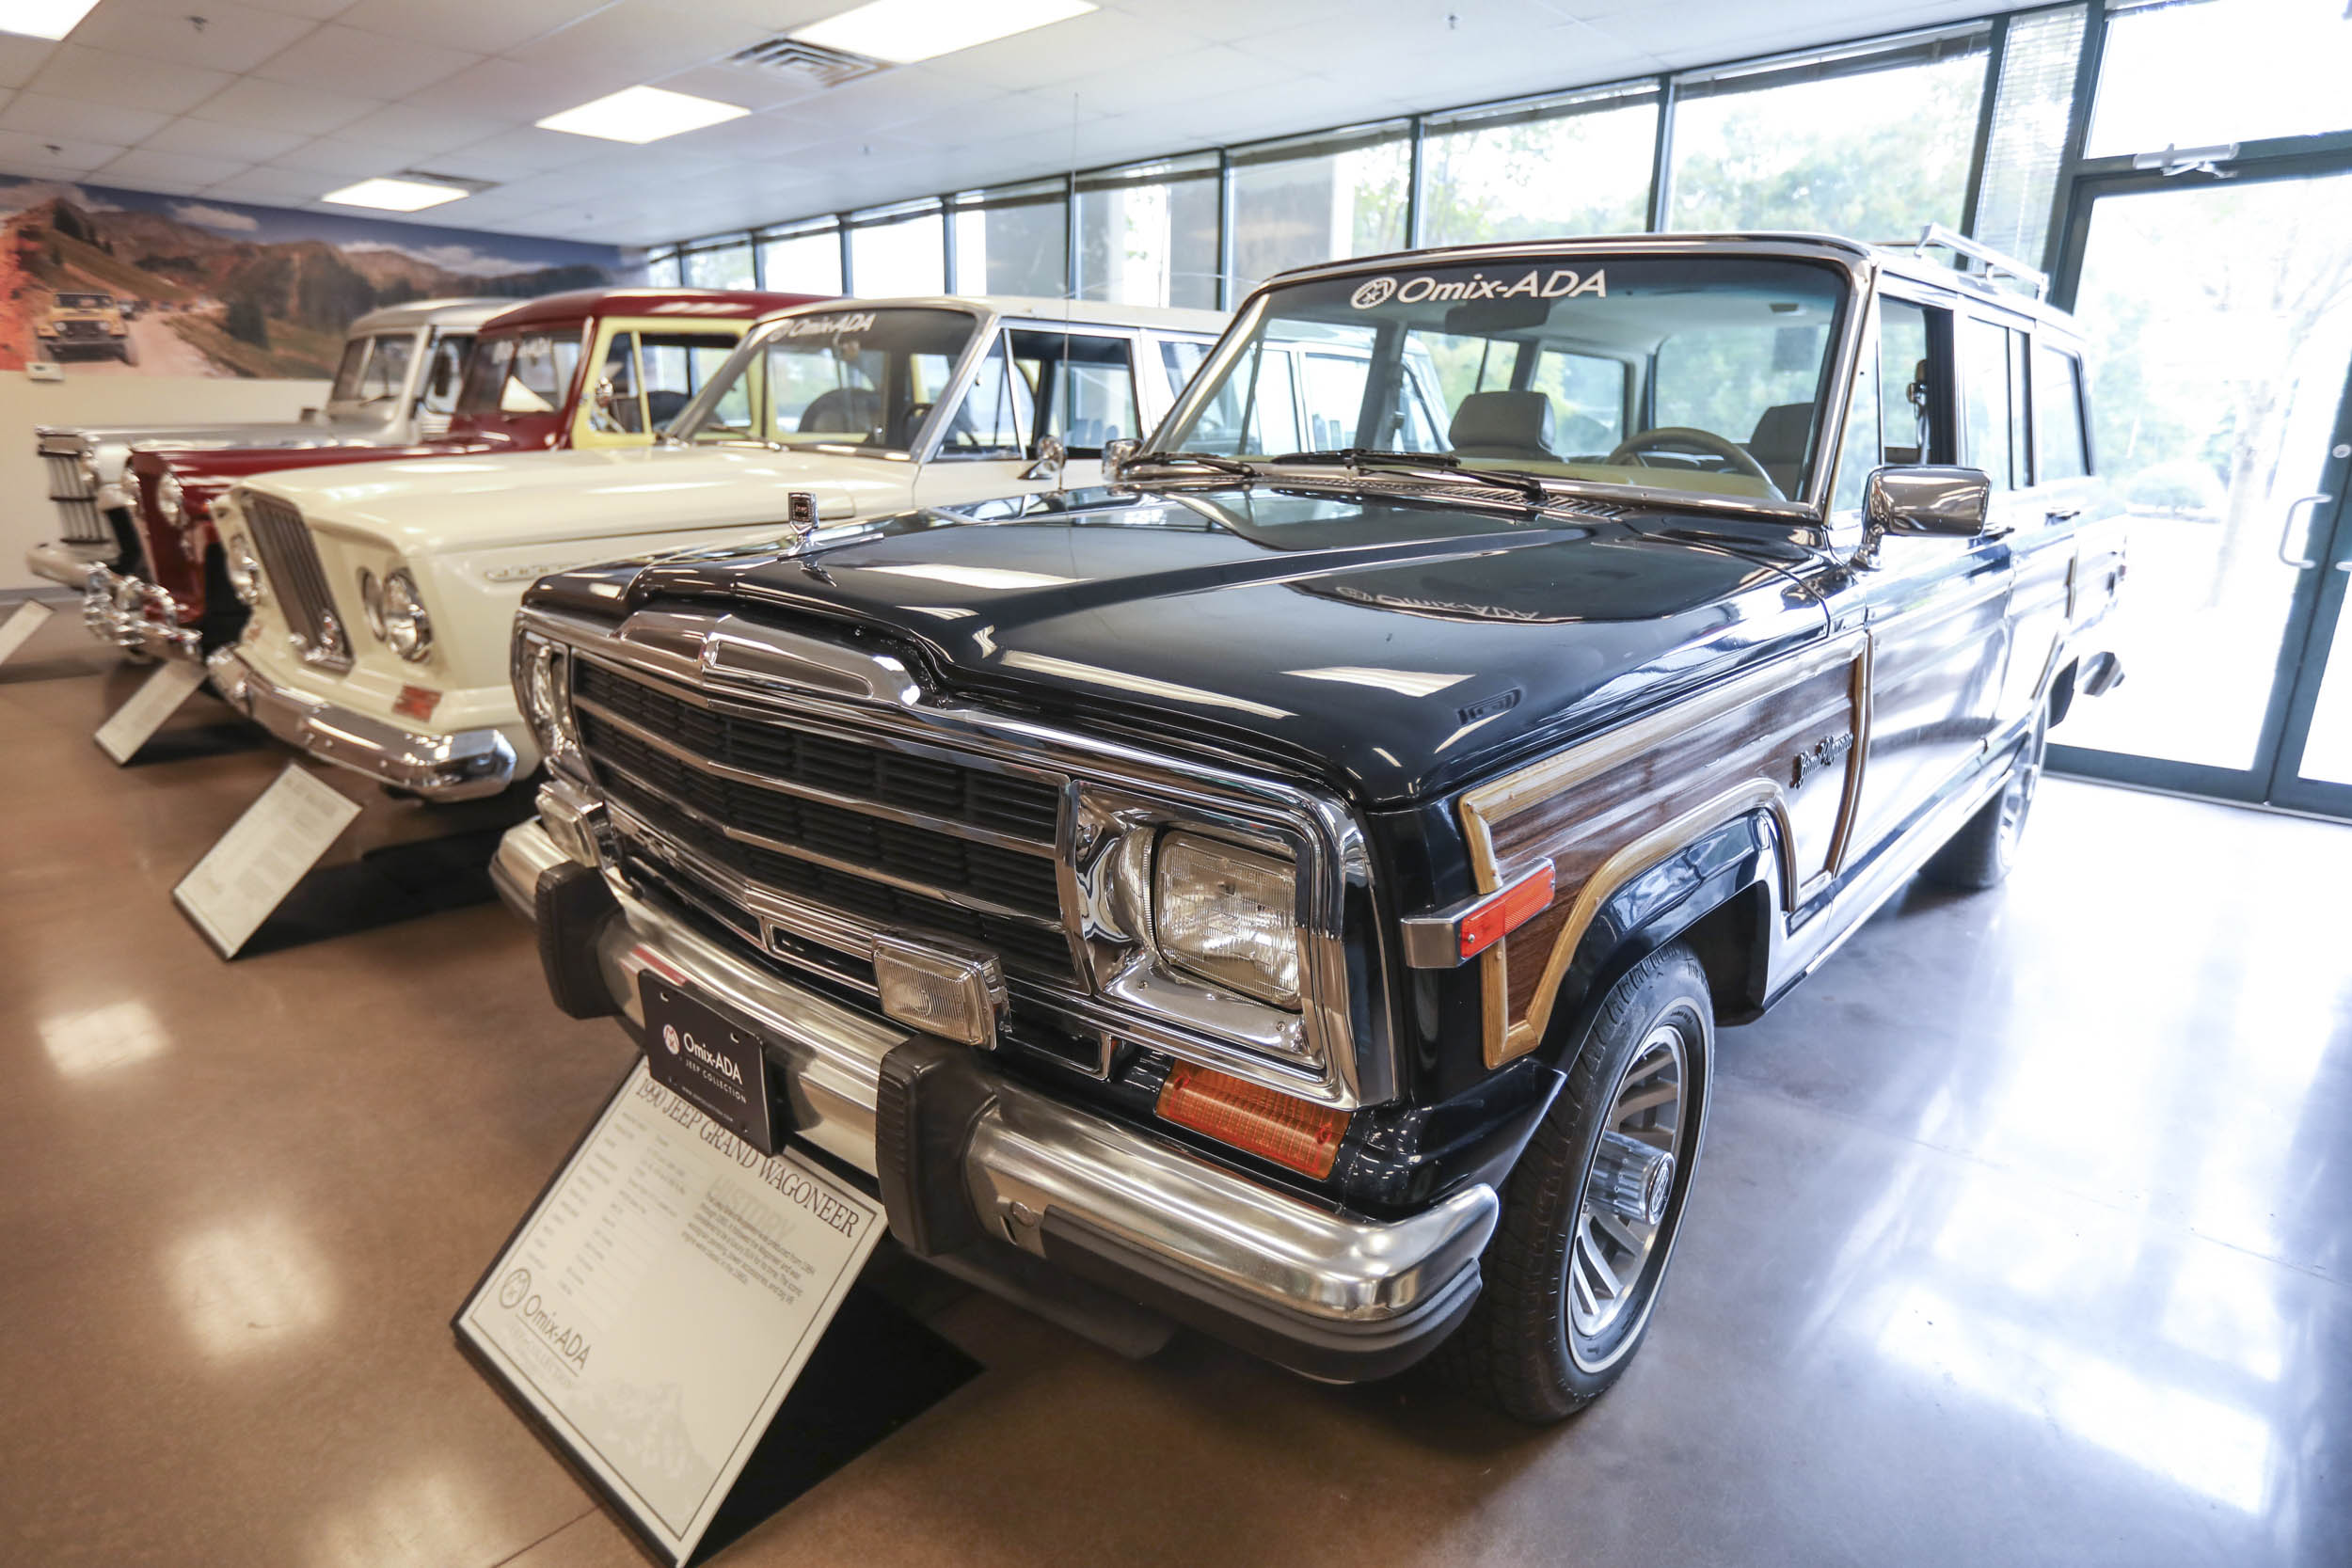 Like their Willys Wagon predecessors, Wagoneers had a long production run. This 1990 Grand Wagoneer was built after Chrysler's acquisition of Jeep, yet it still used AMC's 360-cu-in V-8.